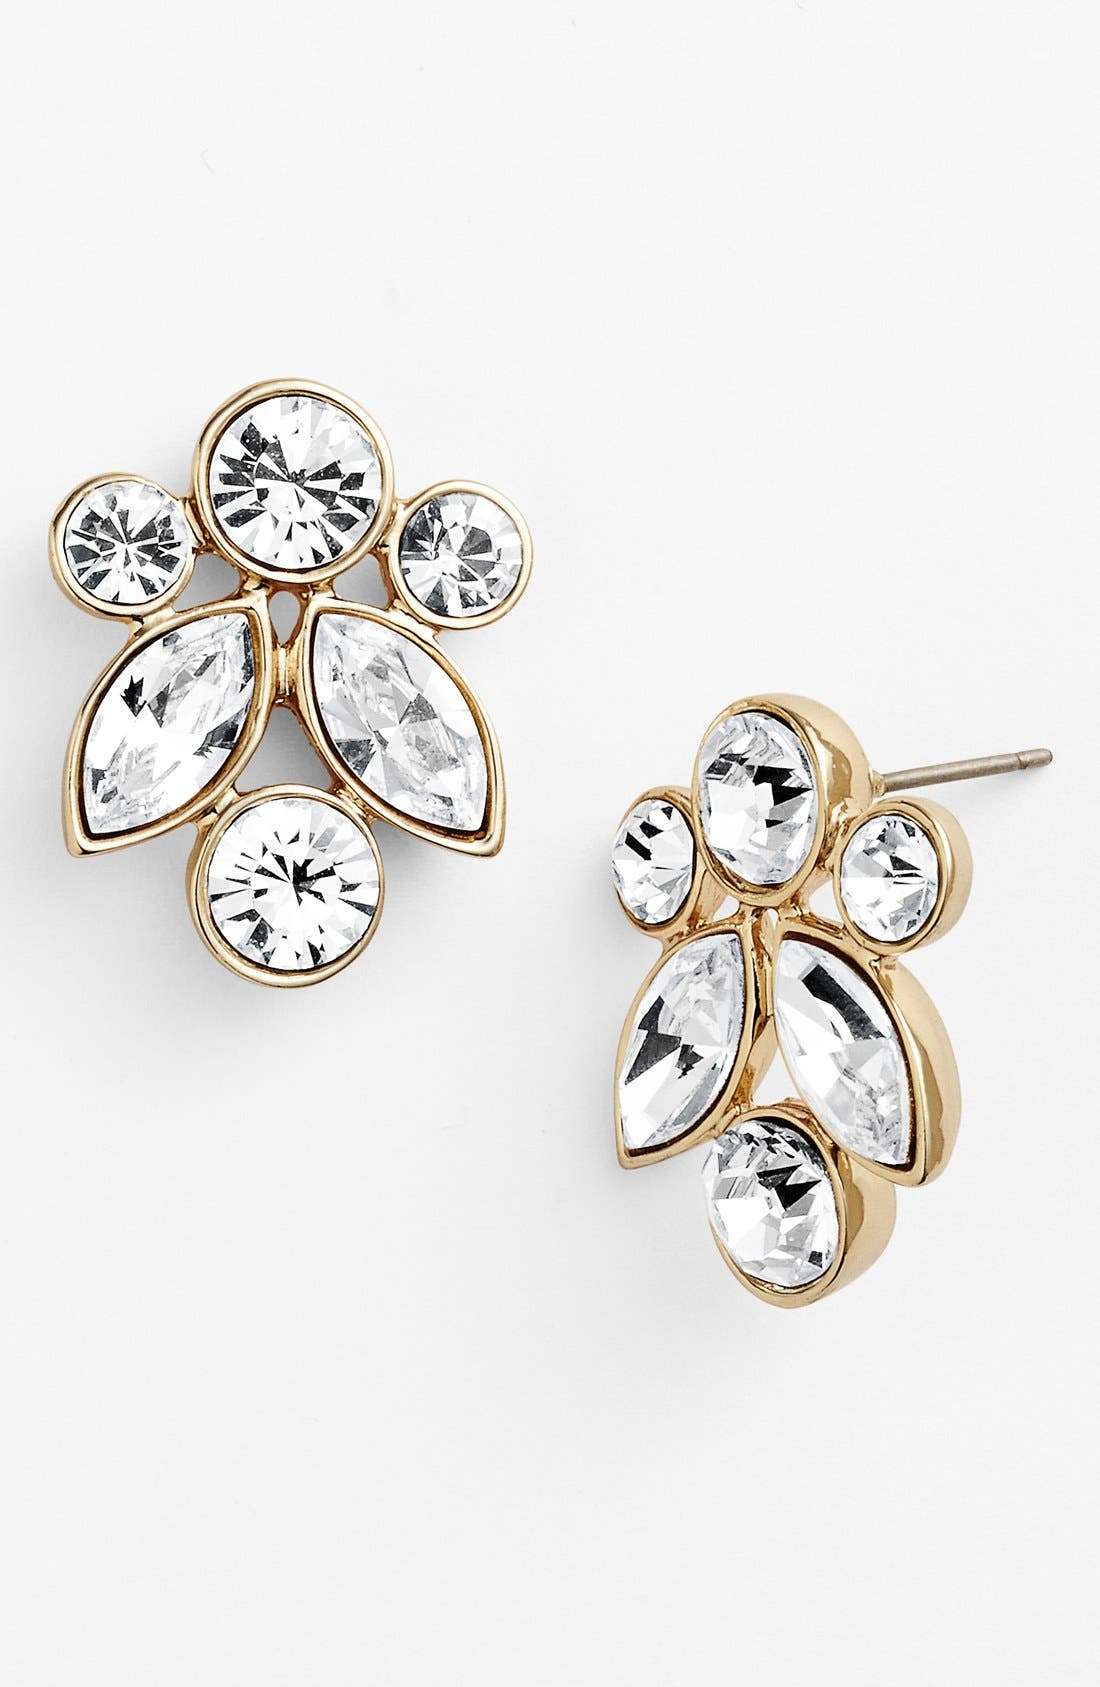 Main Image - Givenchy Cluster Stud Earrings